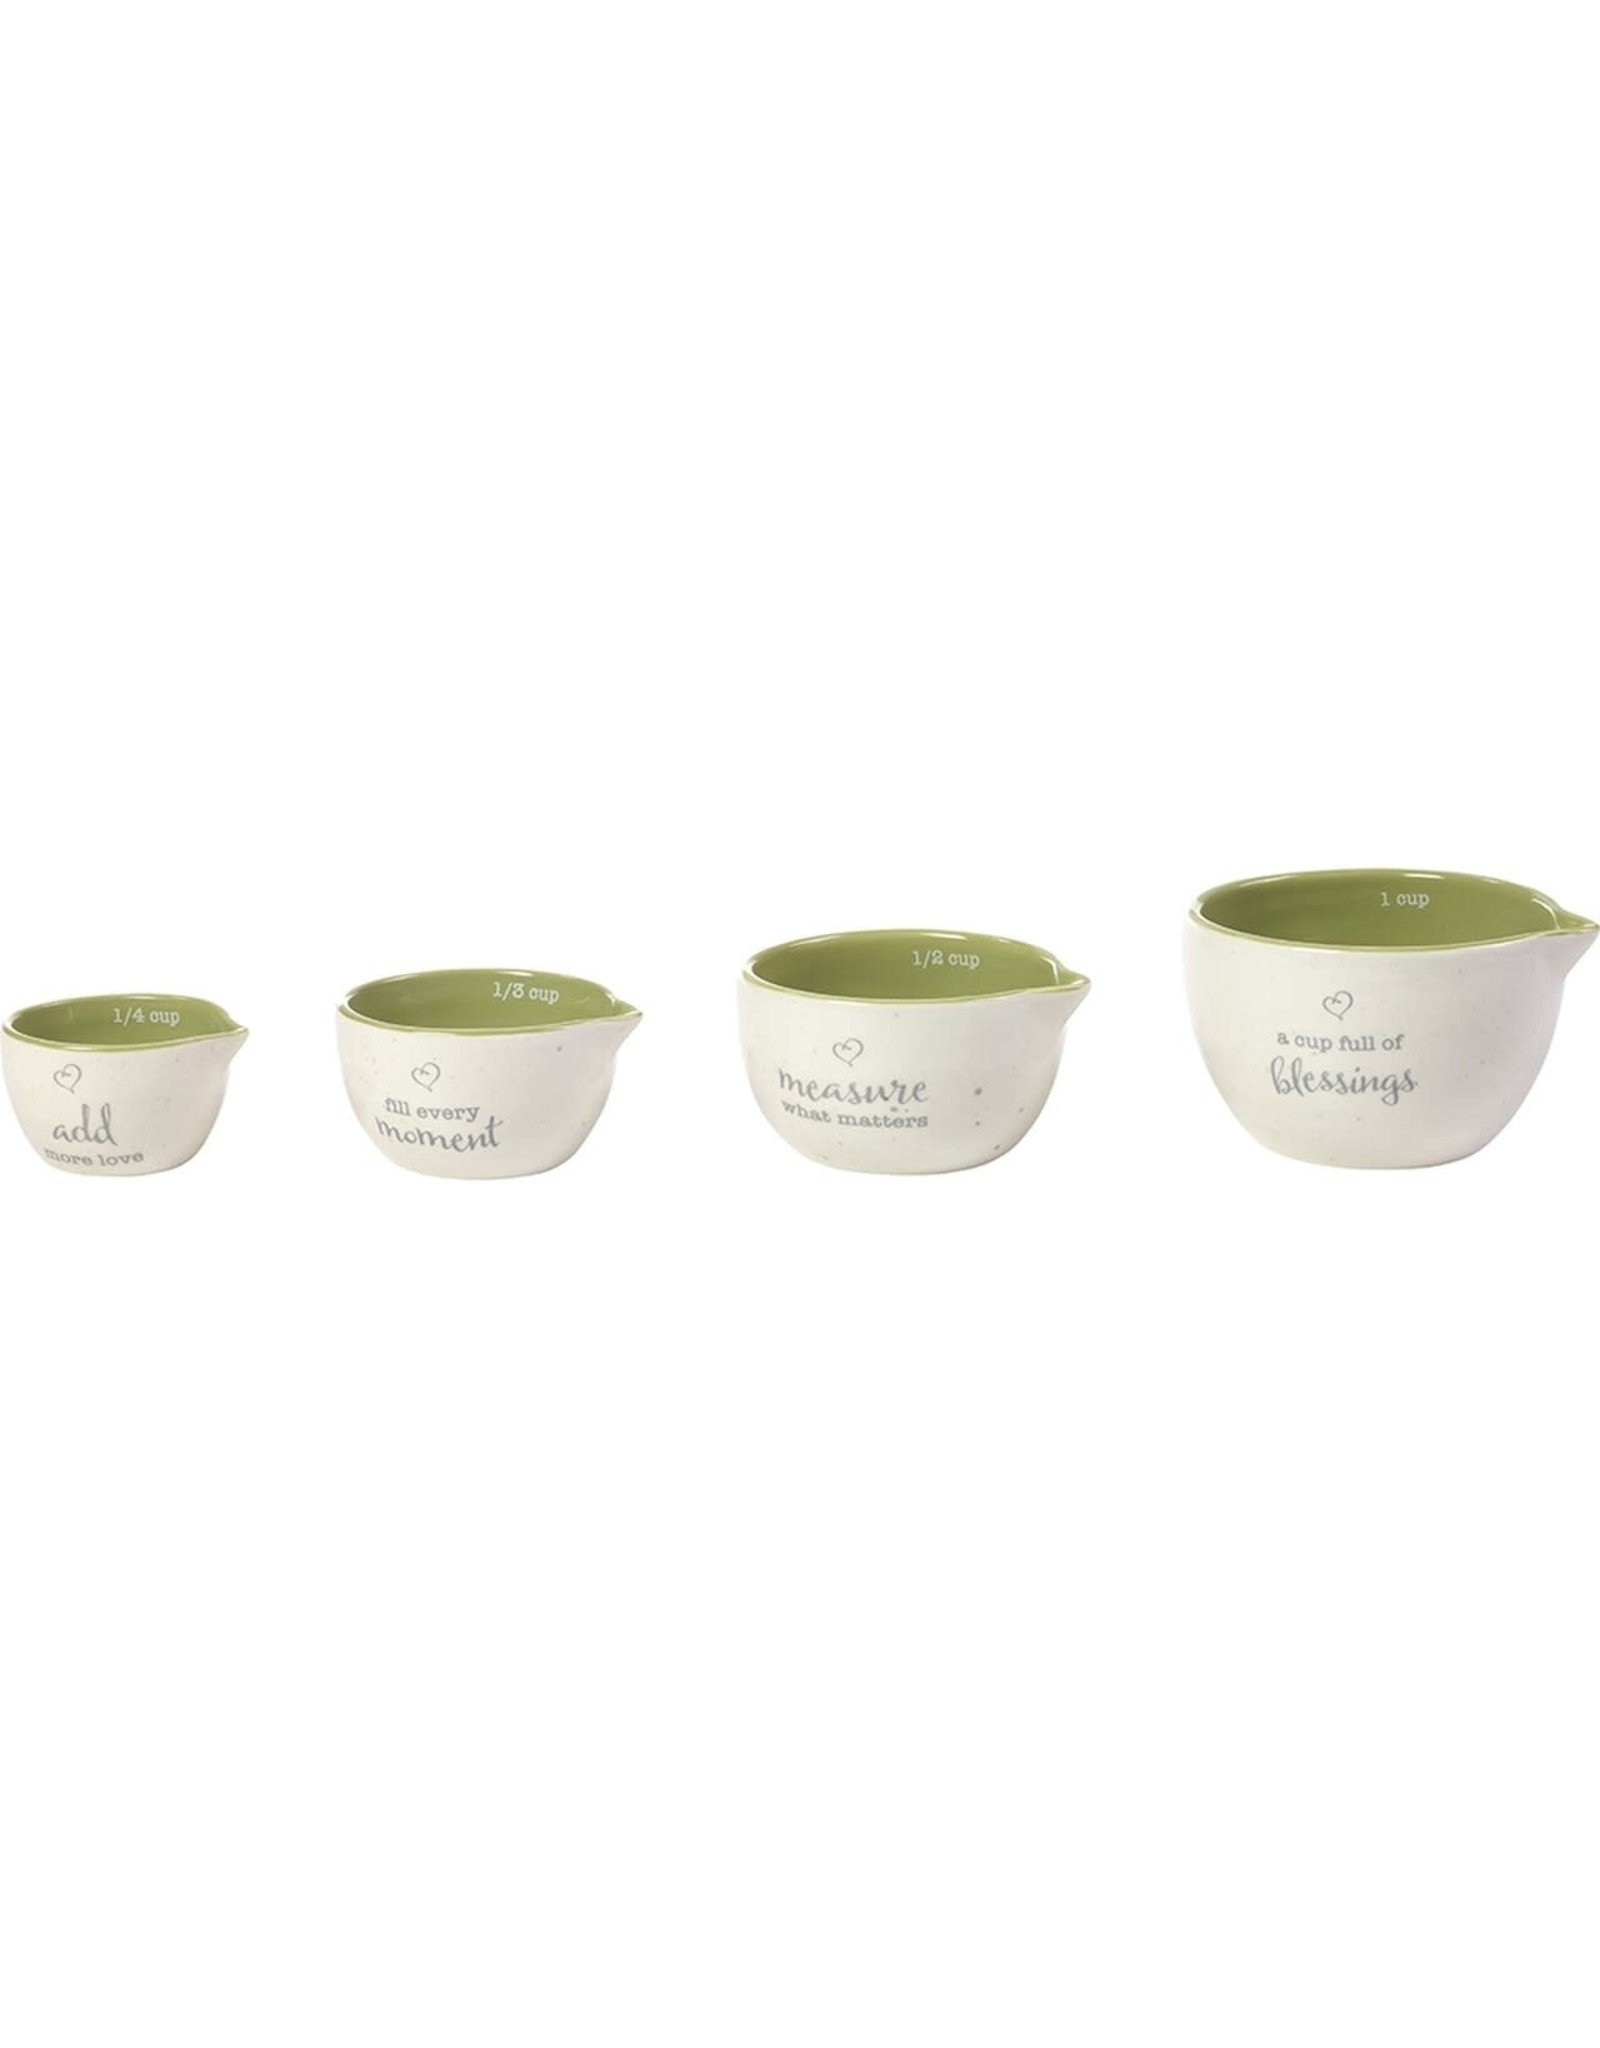 Precious Moments A Cup Full Of Blessings, 4-Piece Ceramic Measuring Cup Set